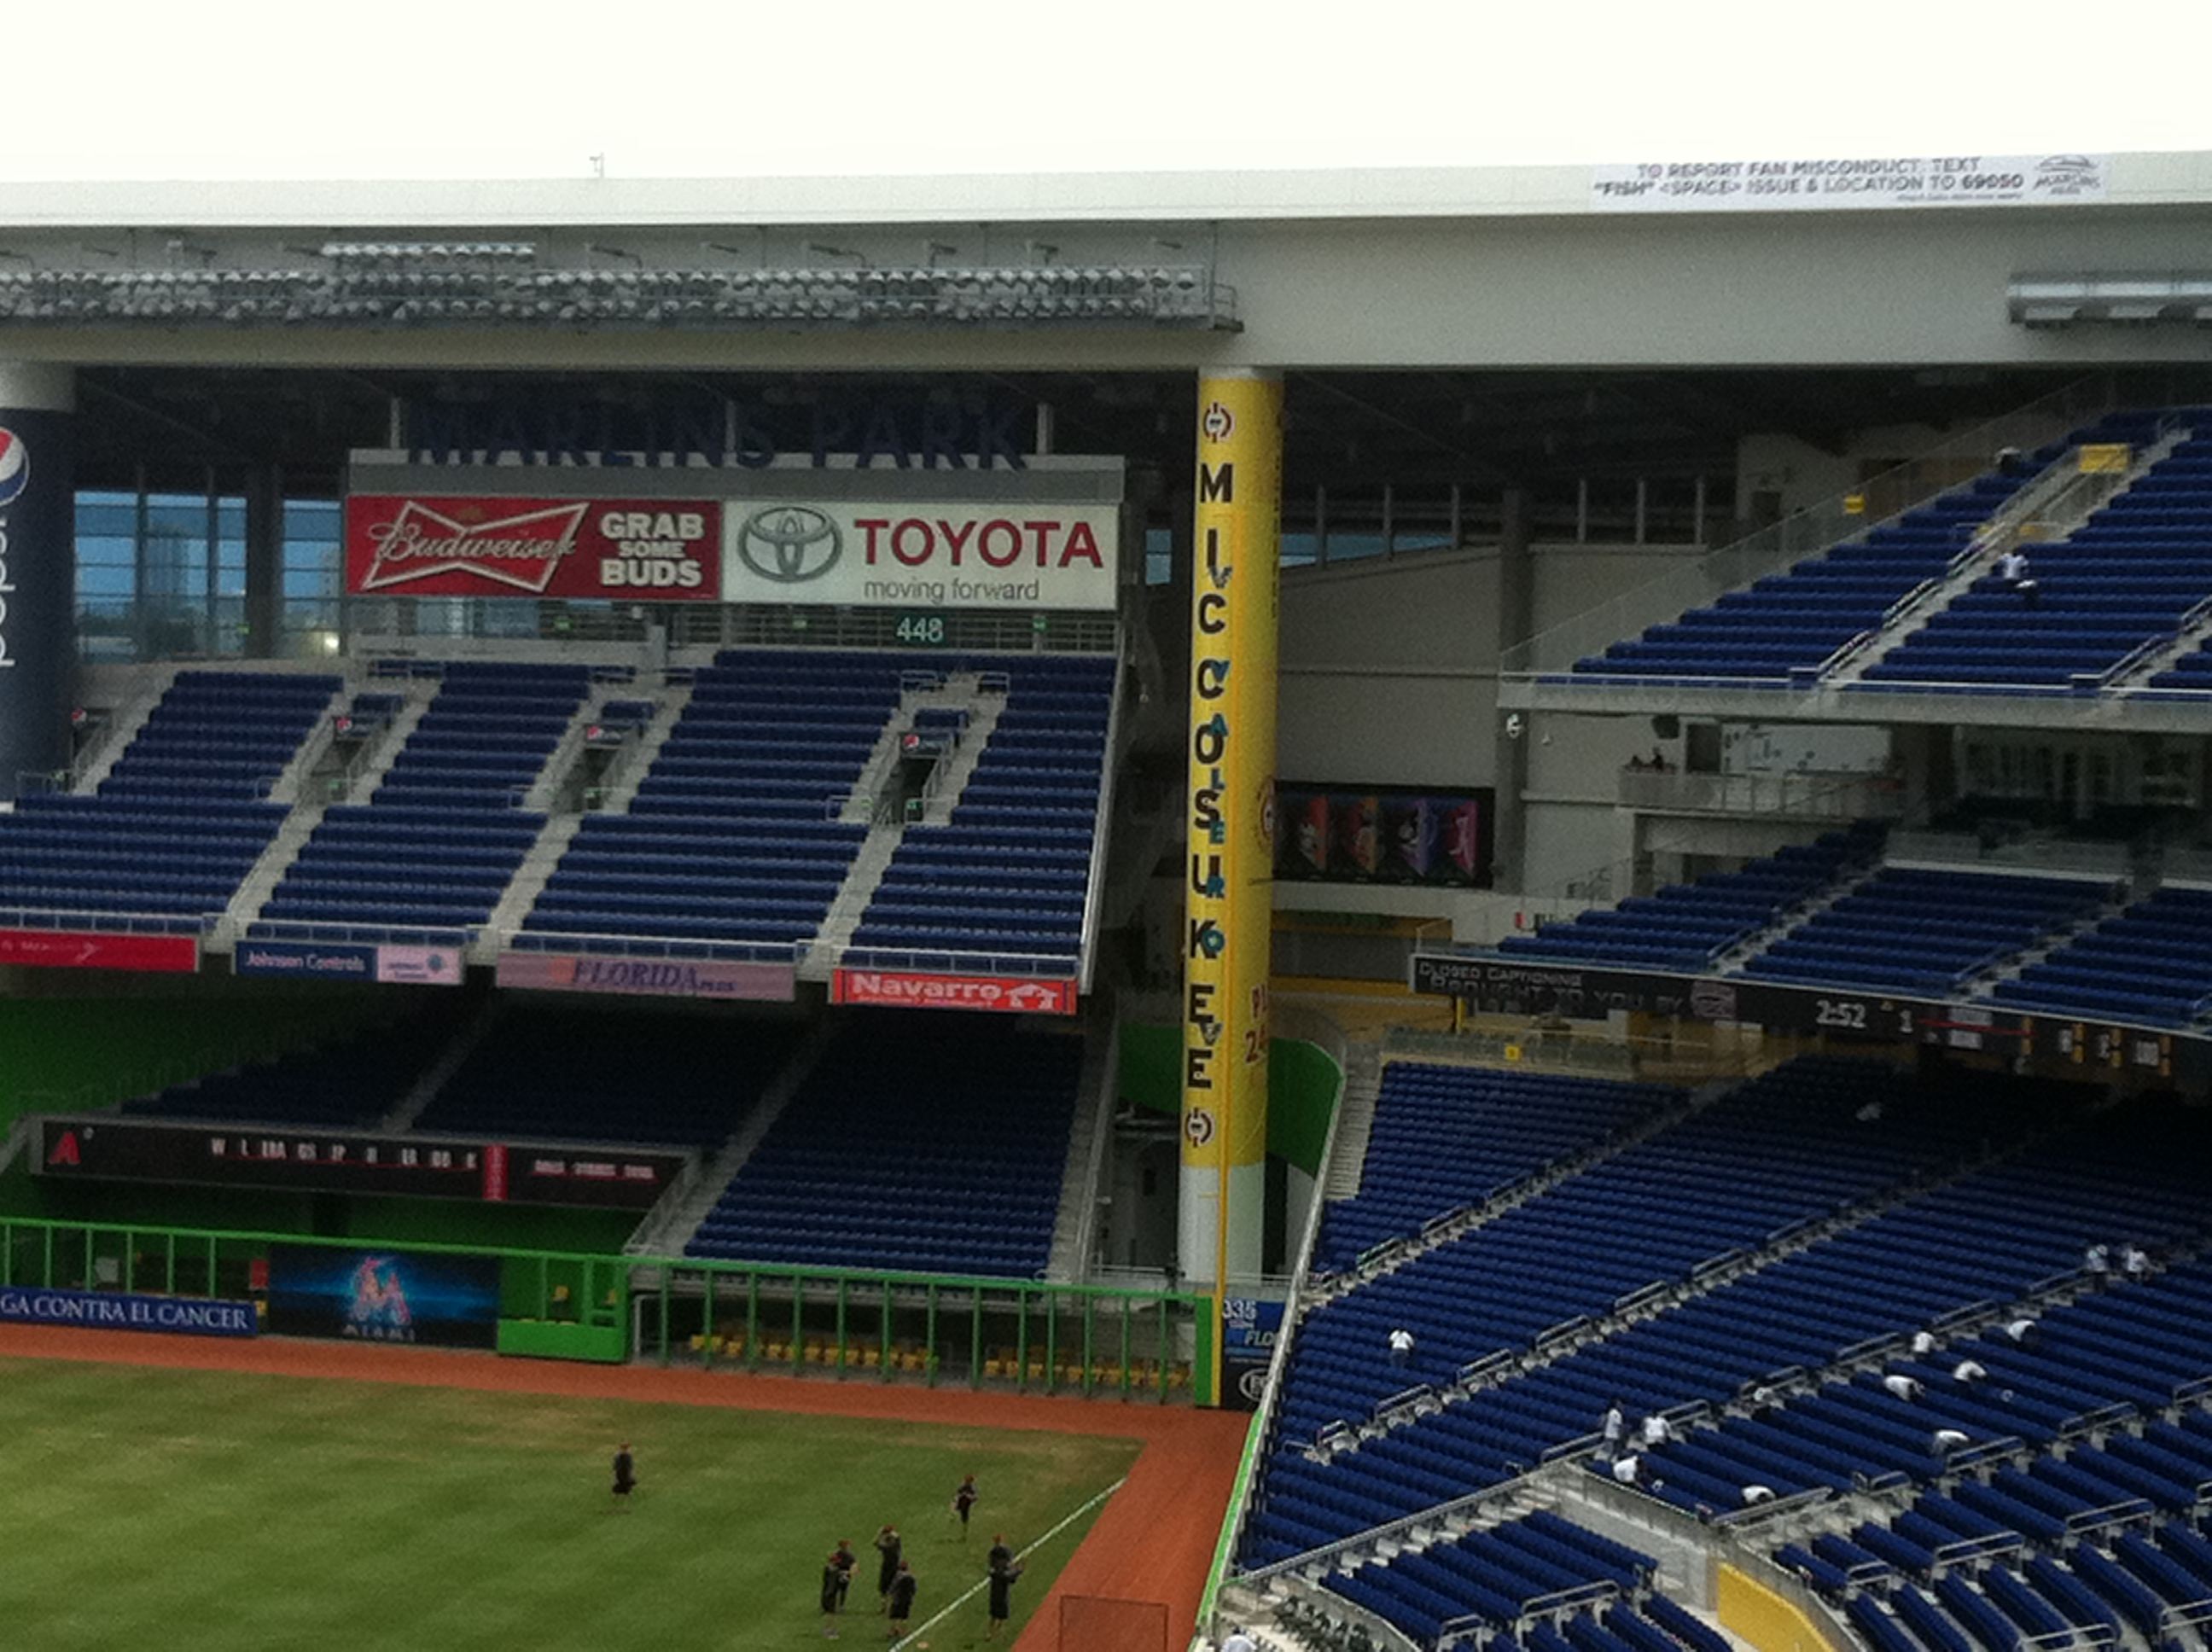 Widest foul pole ever.